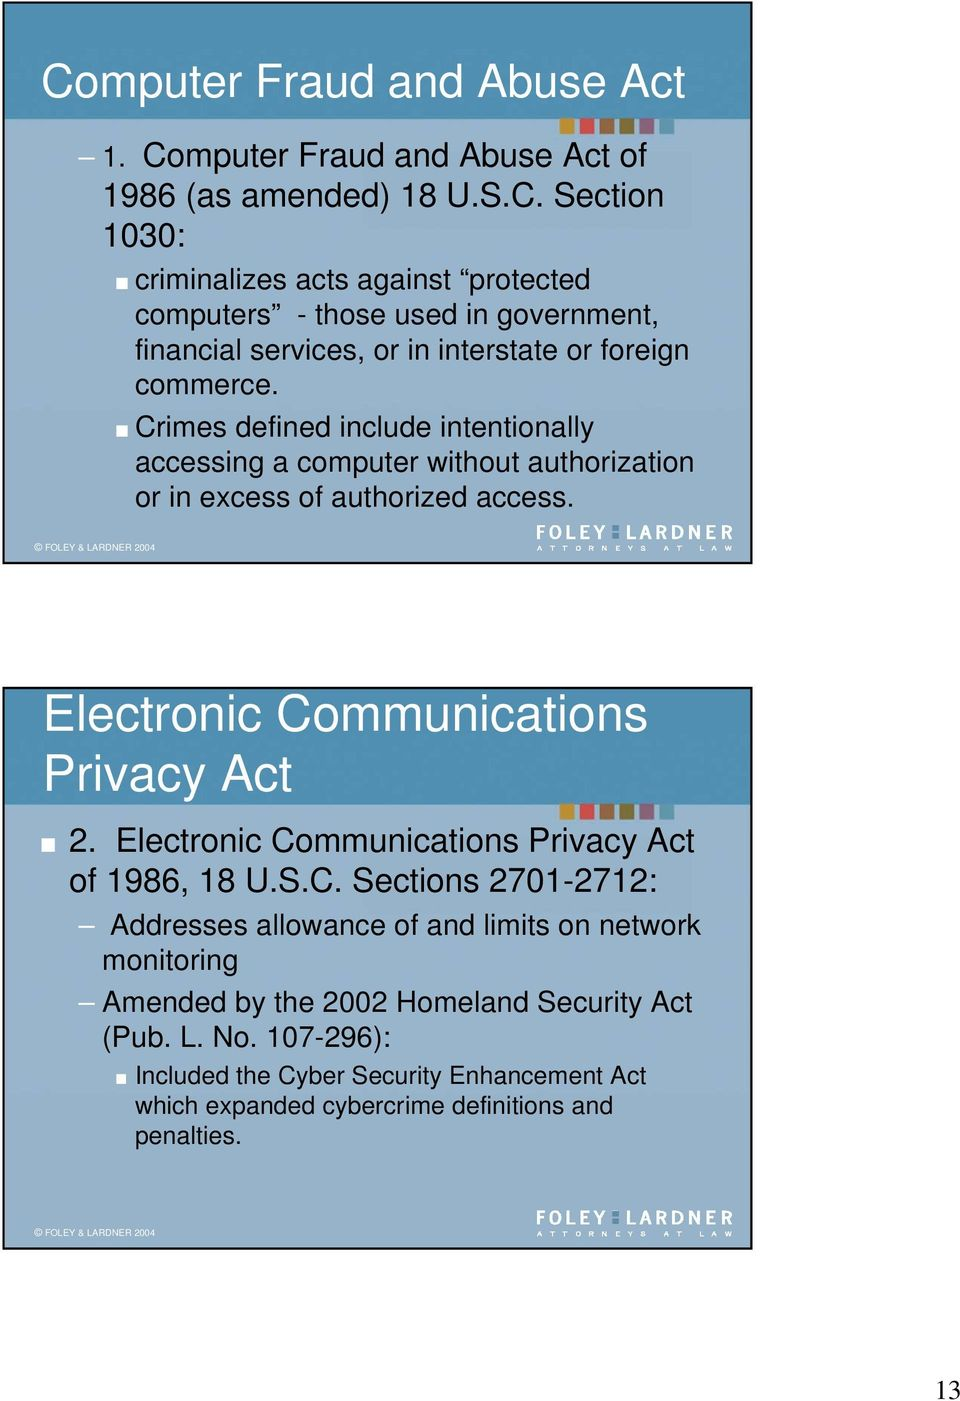 Electronic Communications Privacy Act of 1986, 18 U.S.C. Sections 2701-2712: Addresses allowance of and limits on network monitoring Amended by the 2002 Homeland Security Act (Pub.